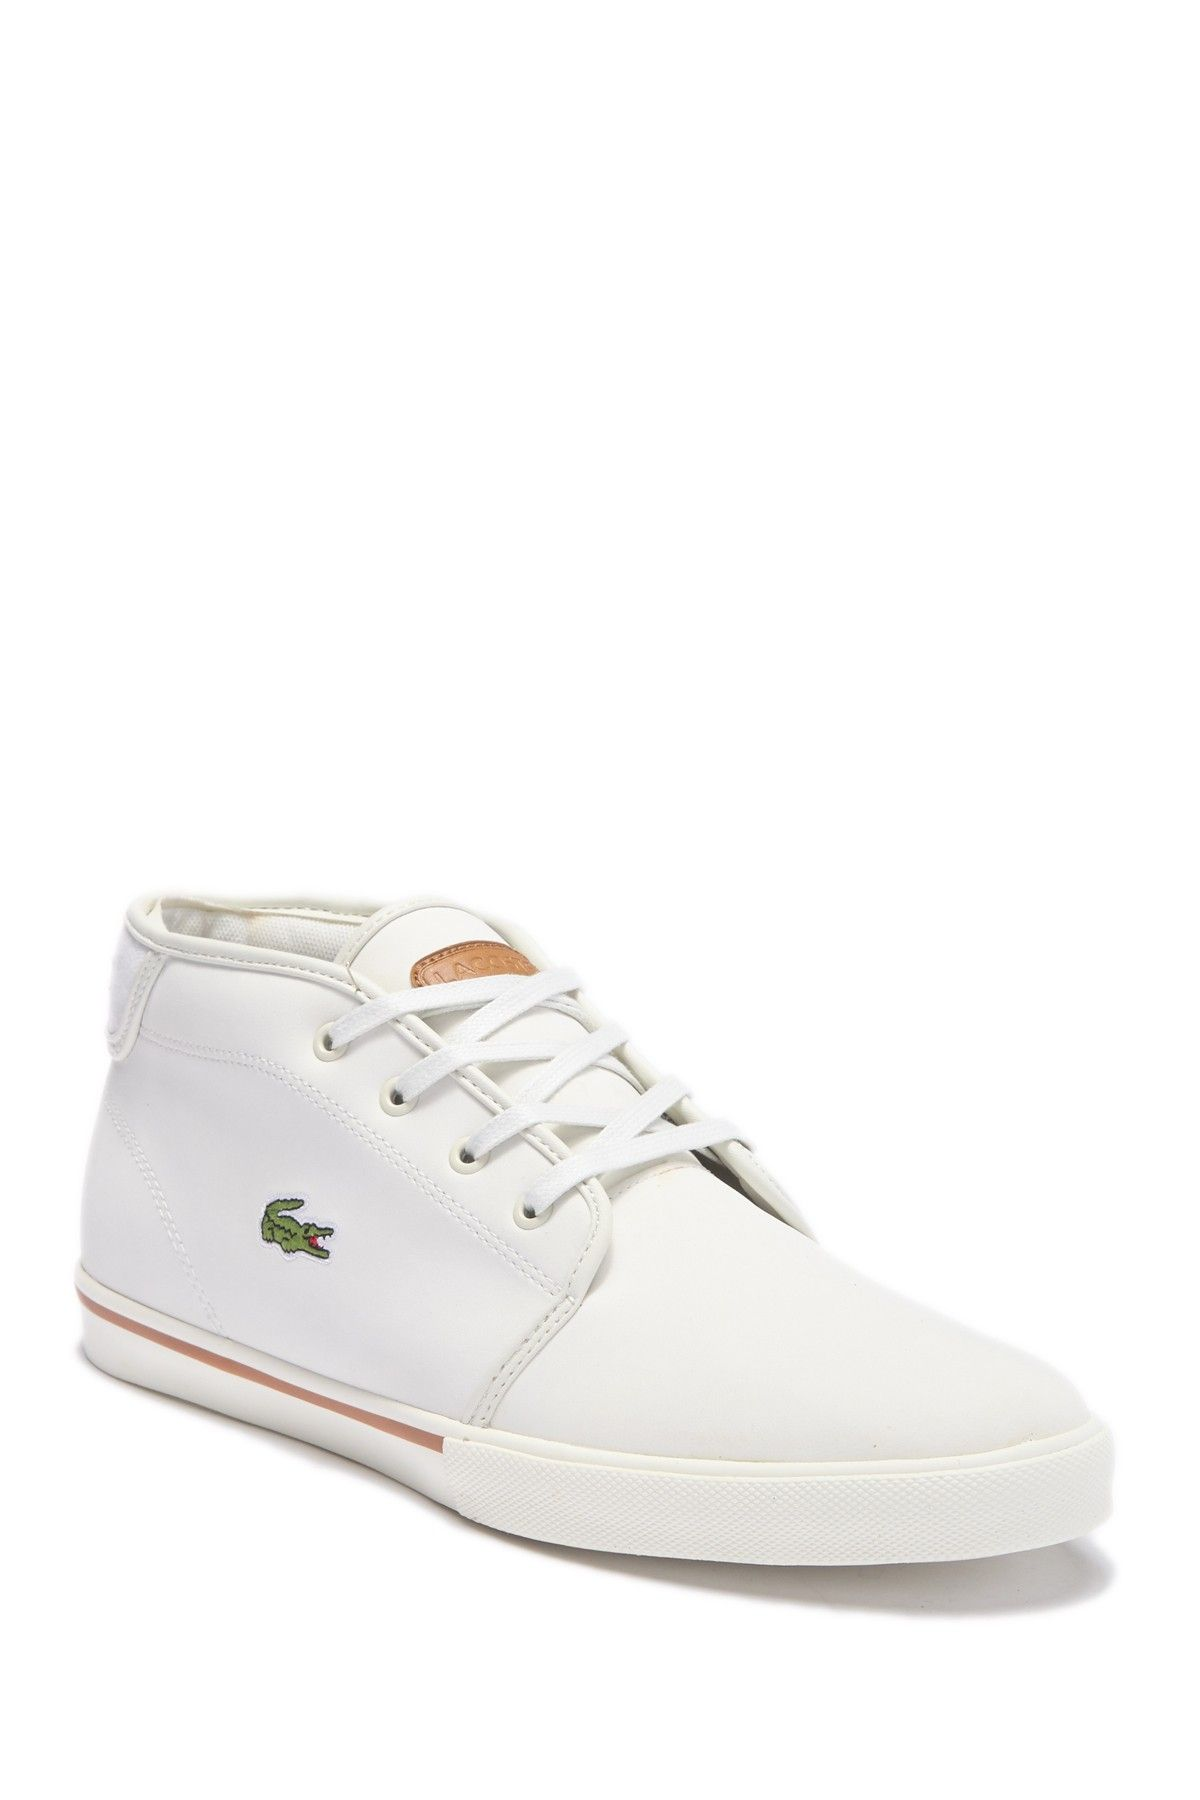 leather mens lacoste trainers